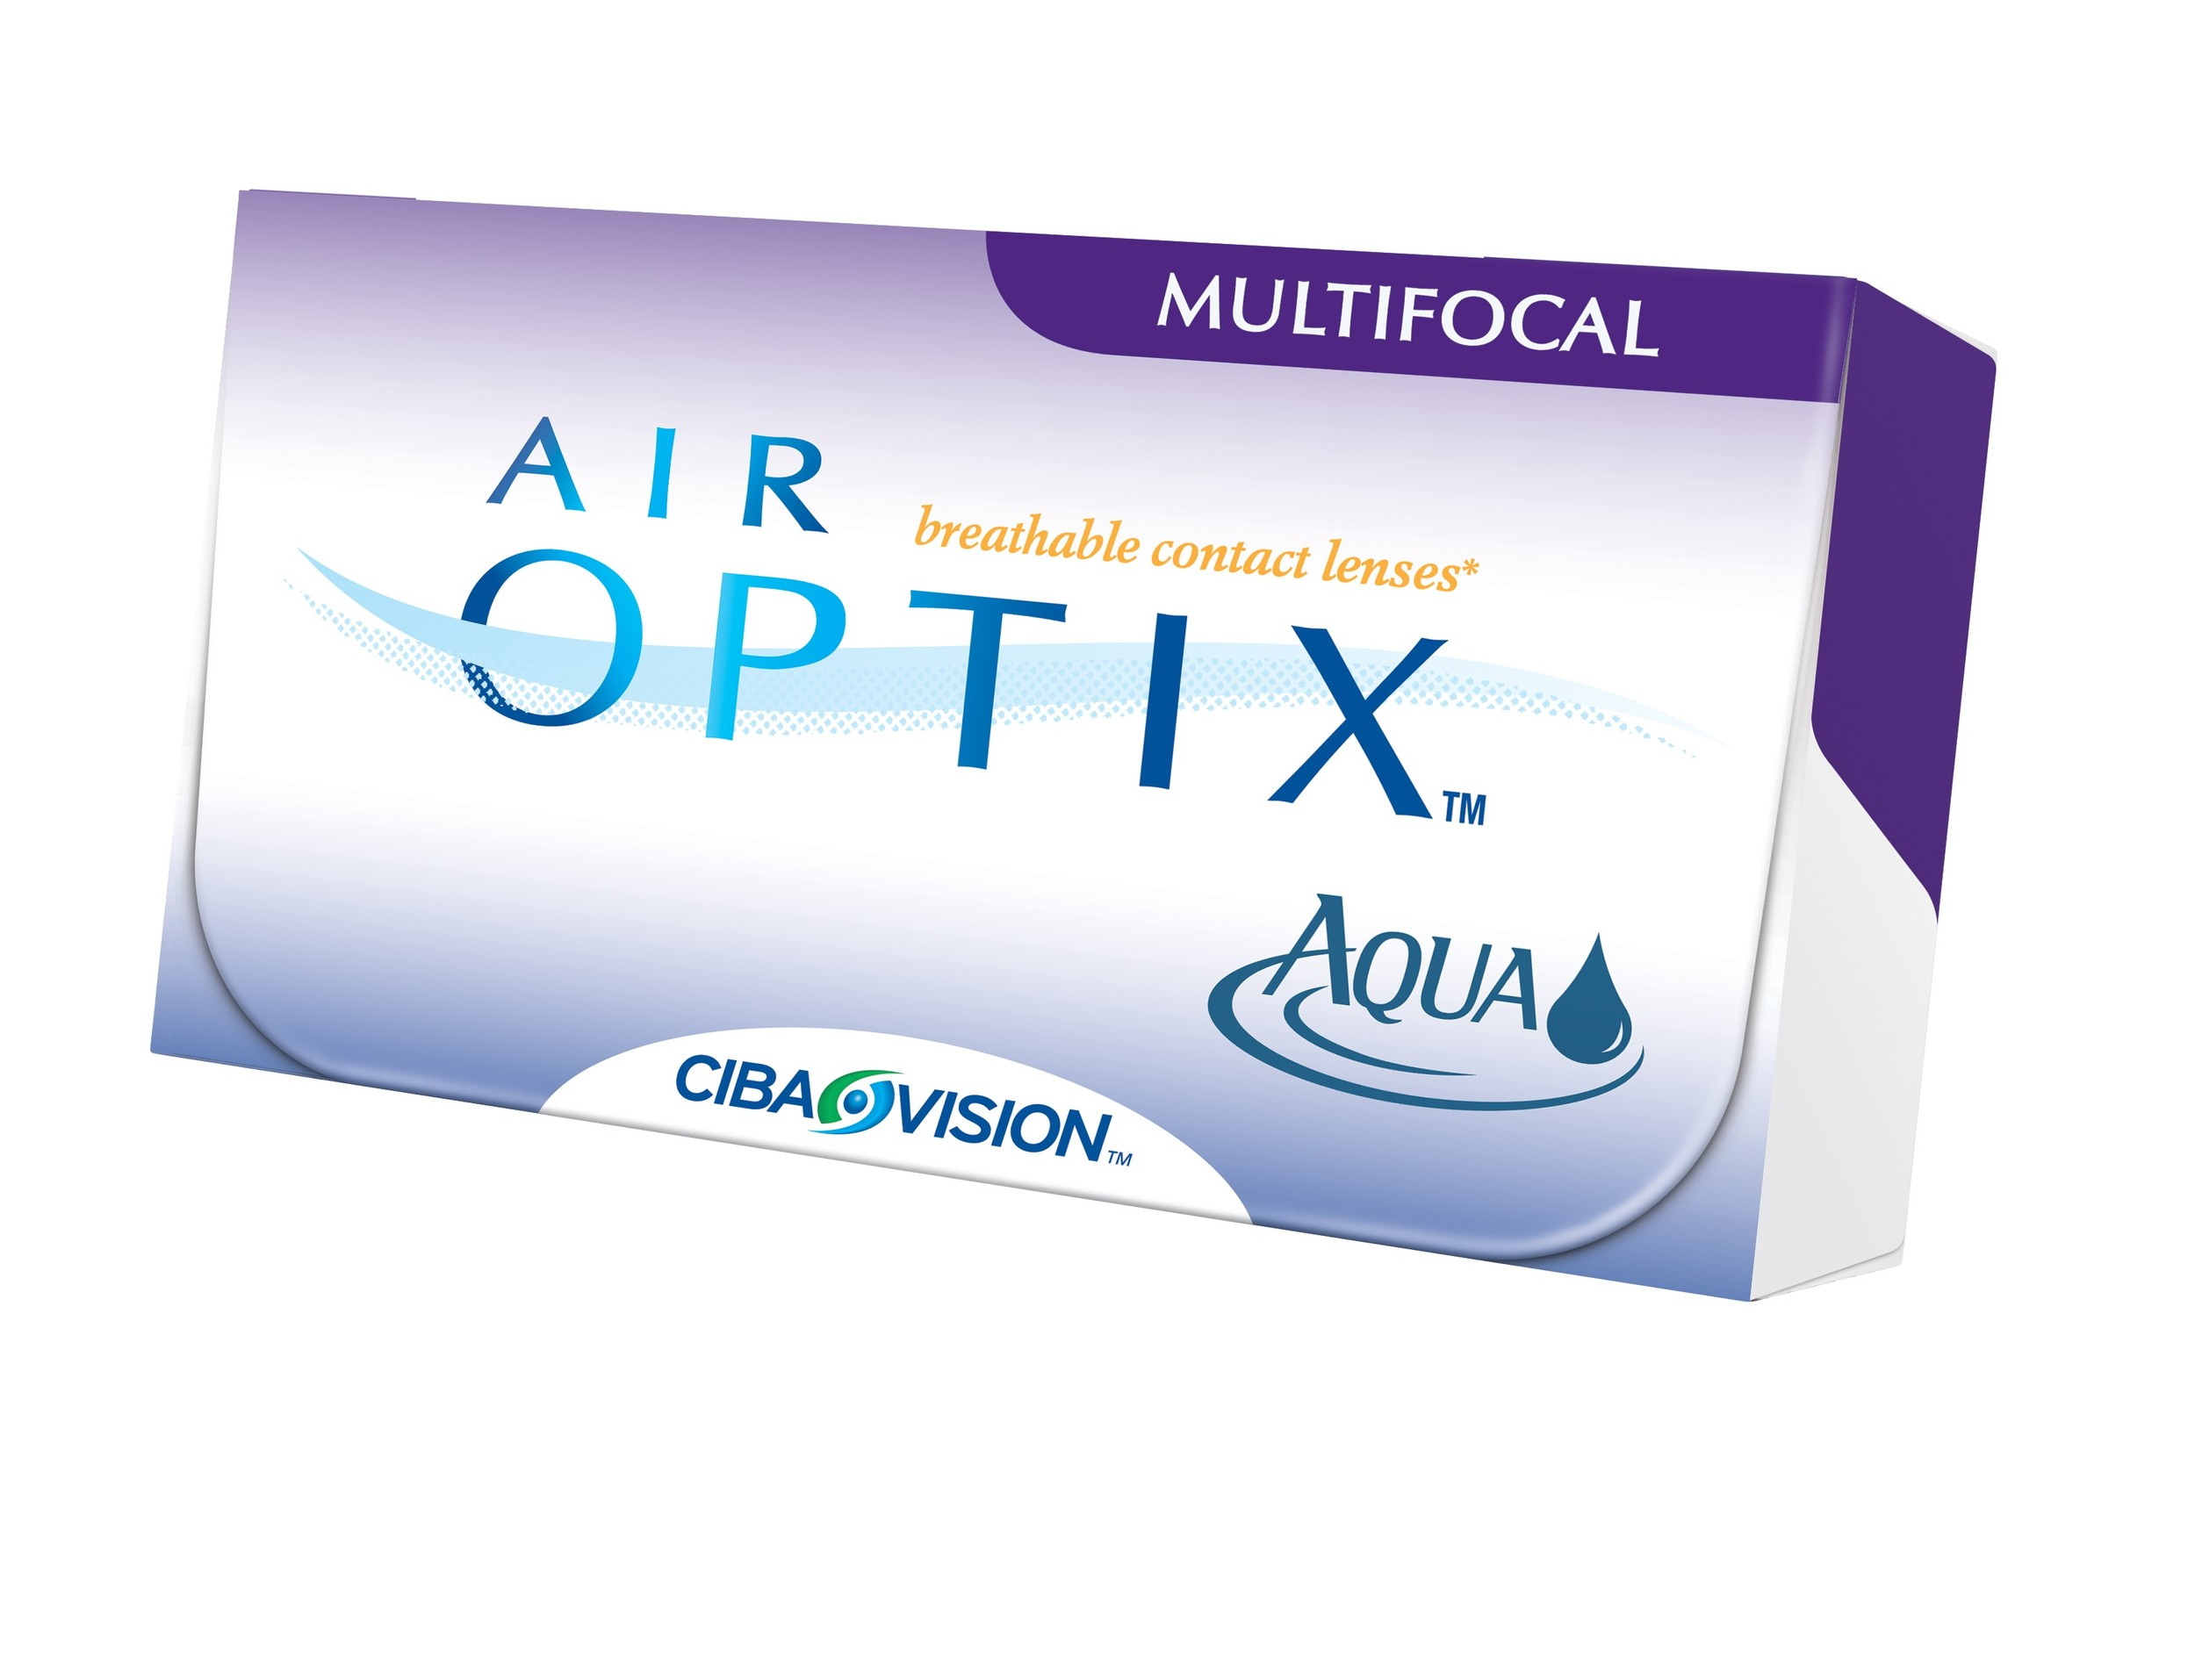 oahu_paradise_optical_oakley_eyewear_contact_lenses_air_optix_hawaii_vision_tricare_military_discounts